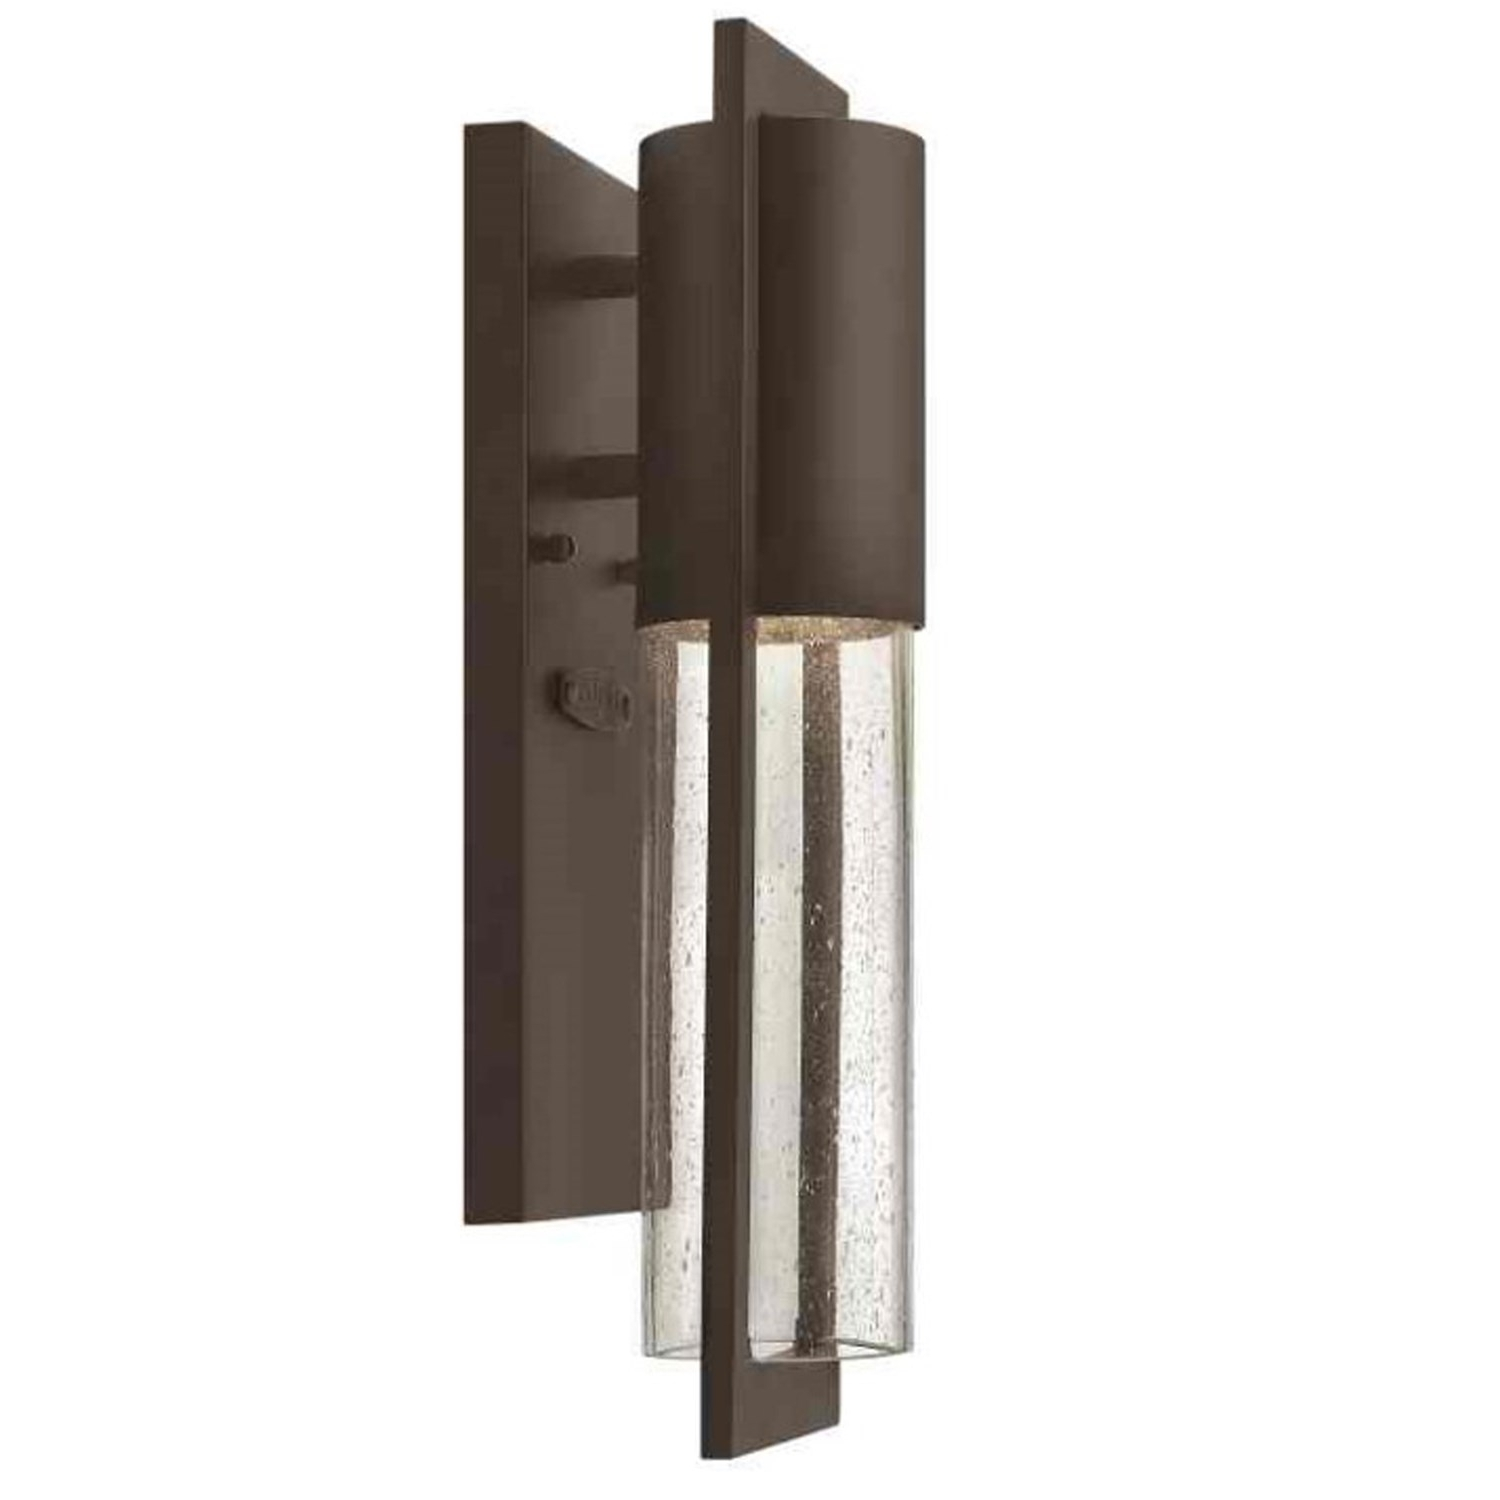 Newest Hinkley 1326kz Led Dwell Mini 1 Light Led Outdoor Wall Sconce In With Beach Outdoor Wall Lighting (View 4 of 20)